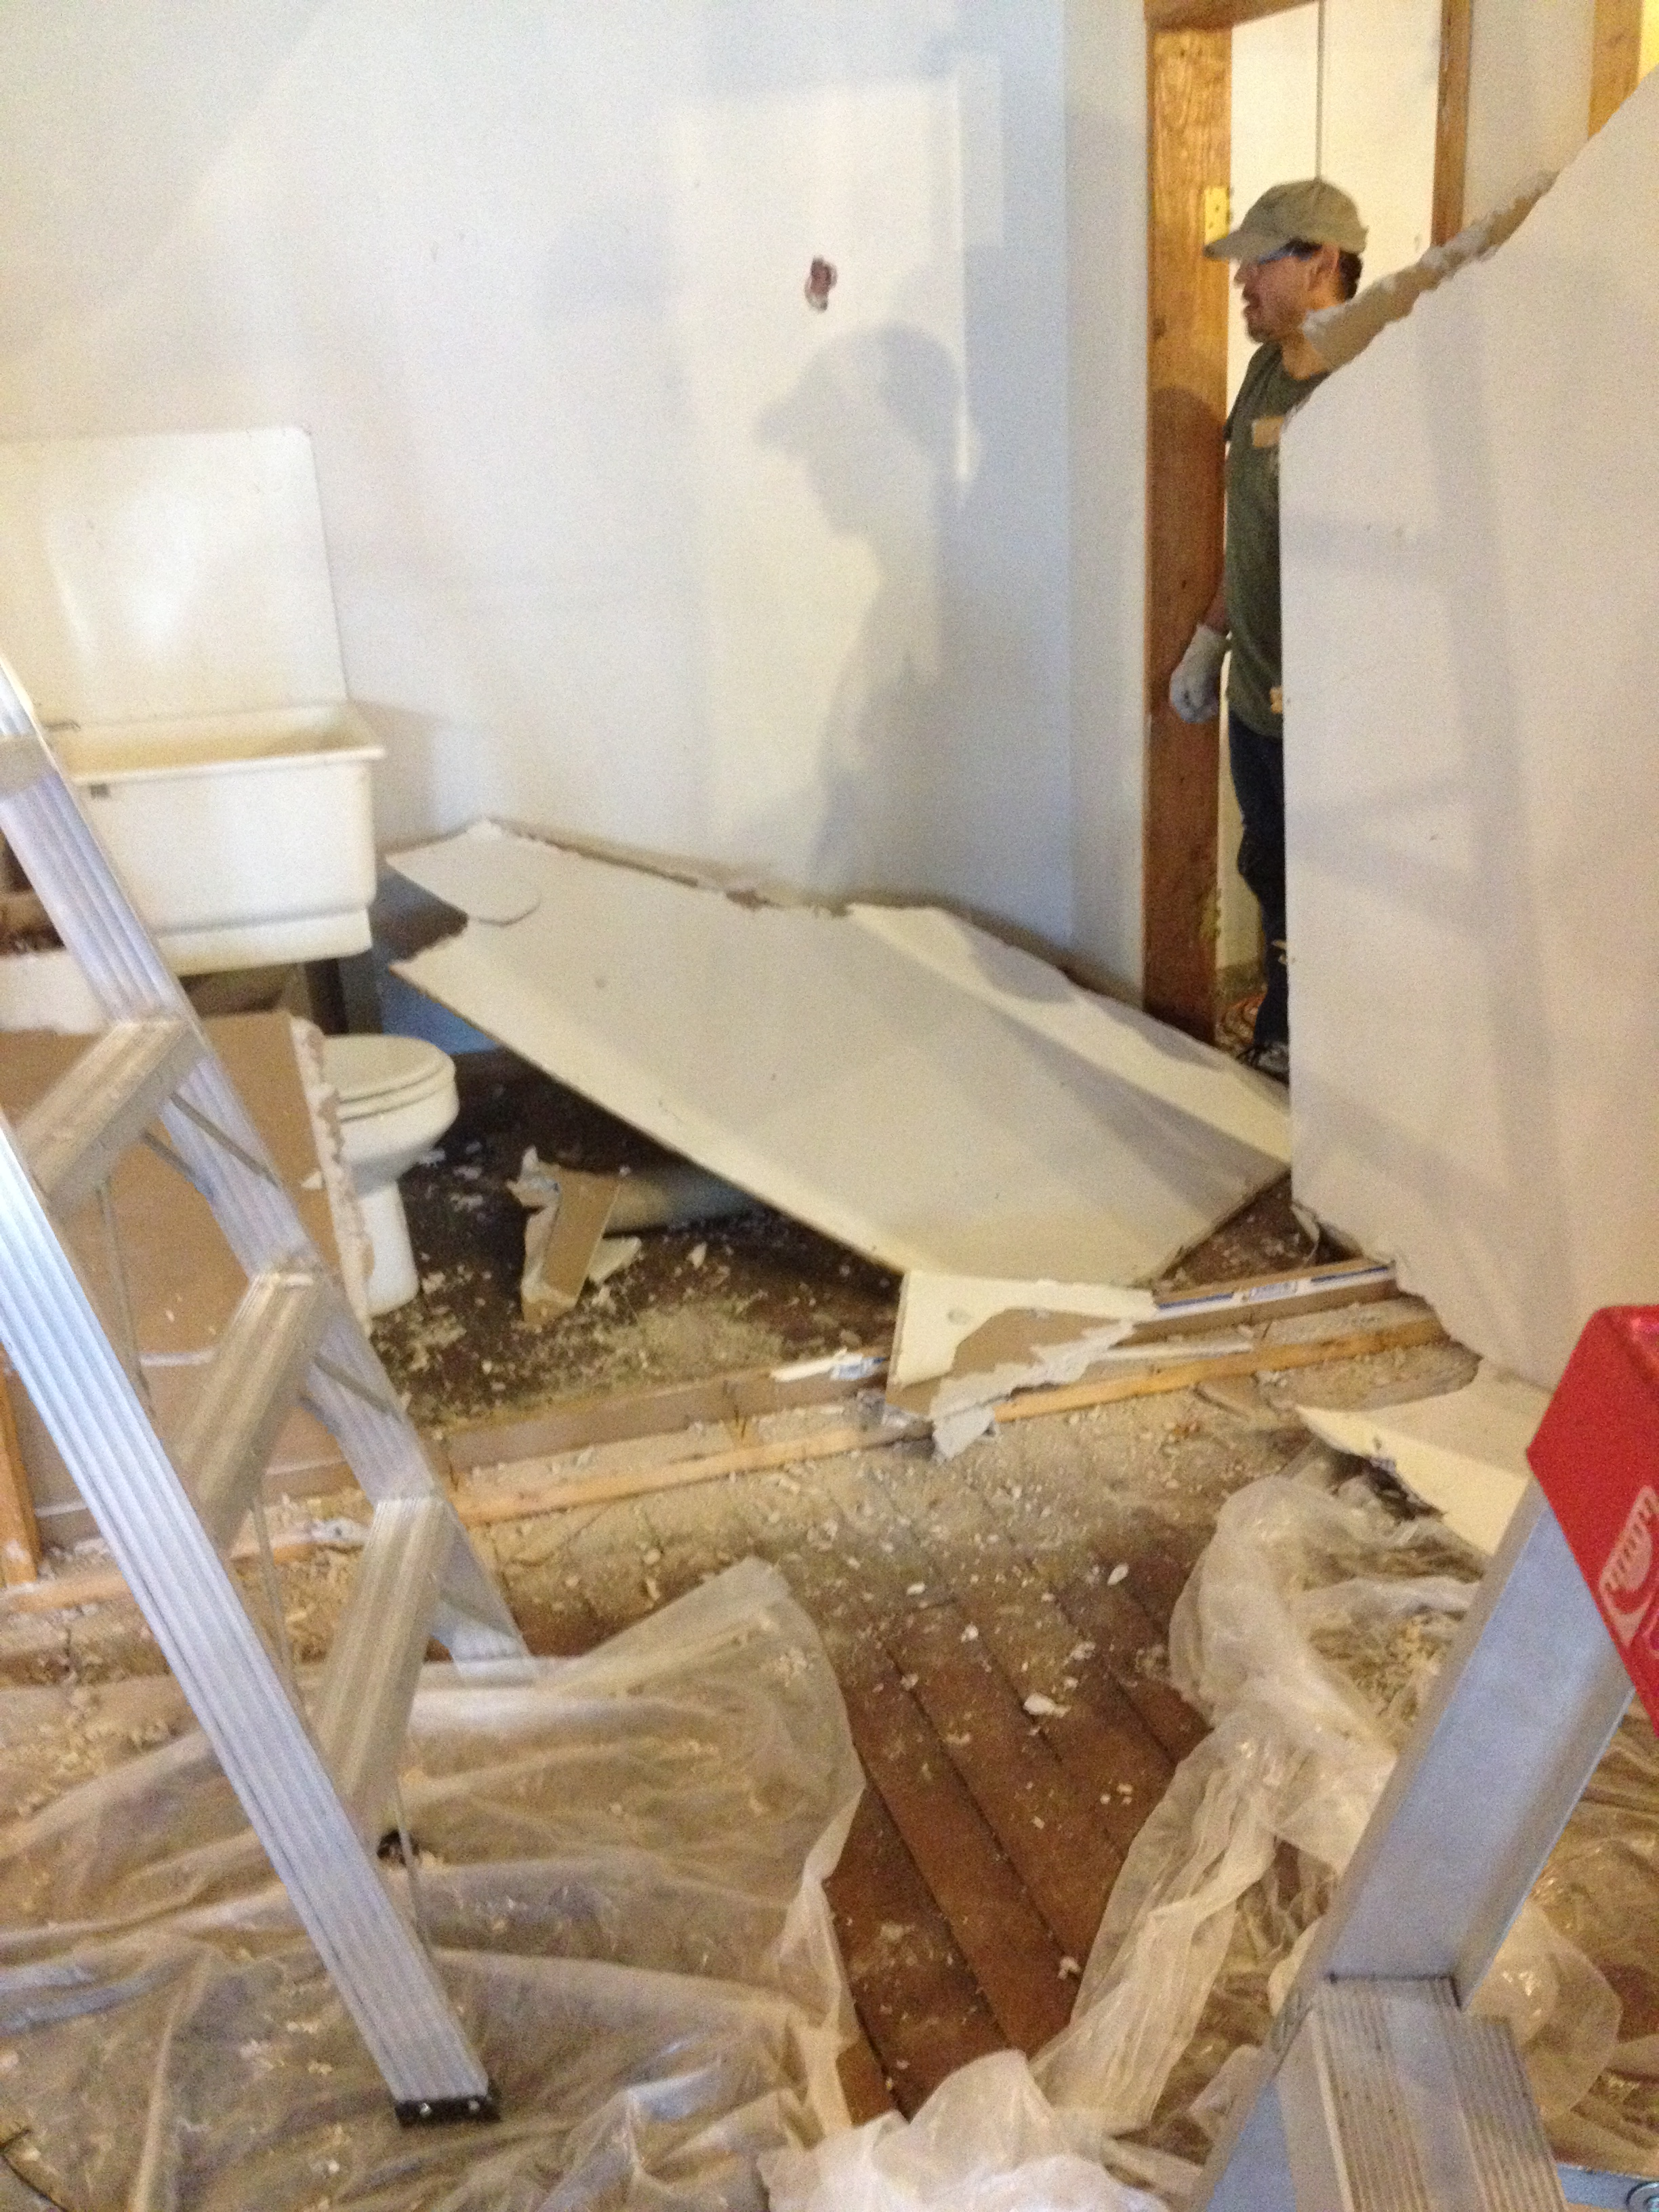 Ceiling unexpectedly fell down!